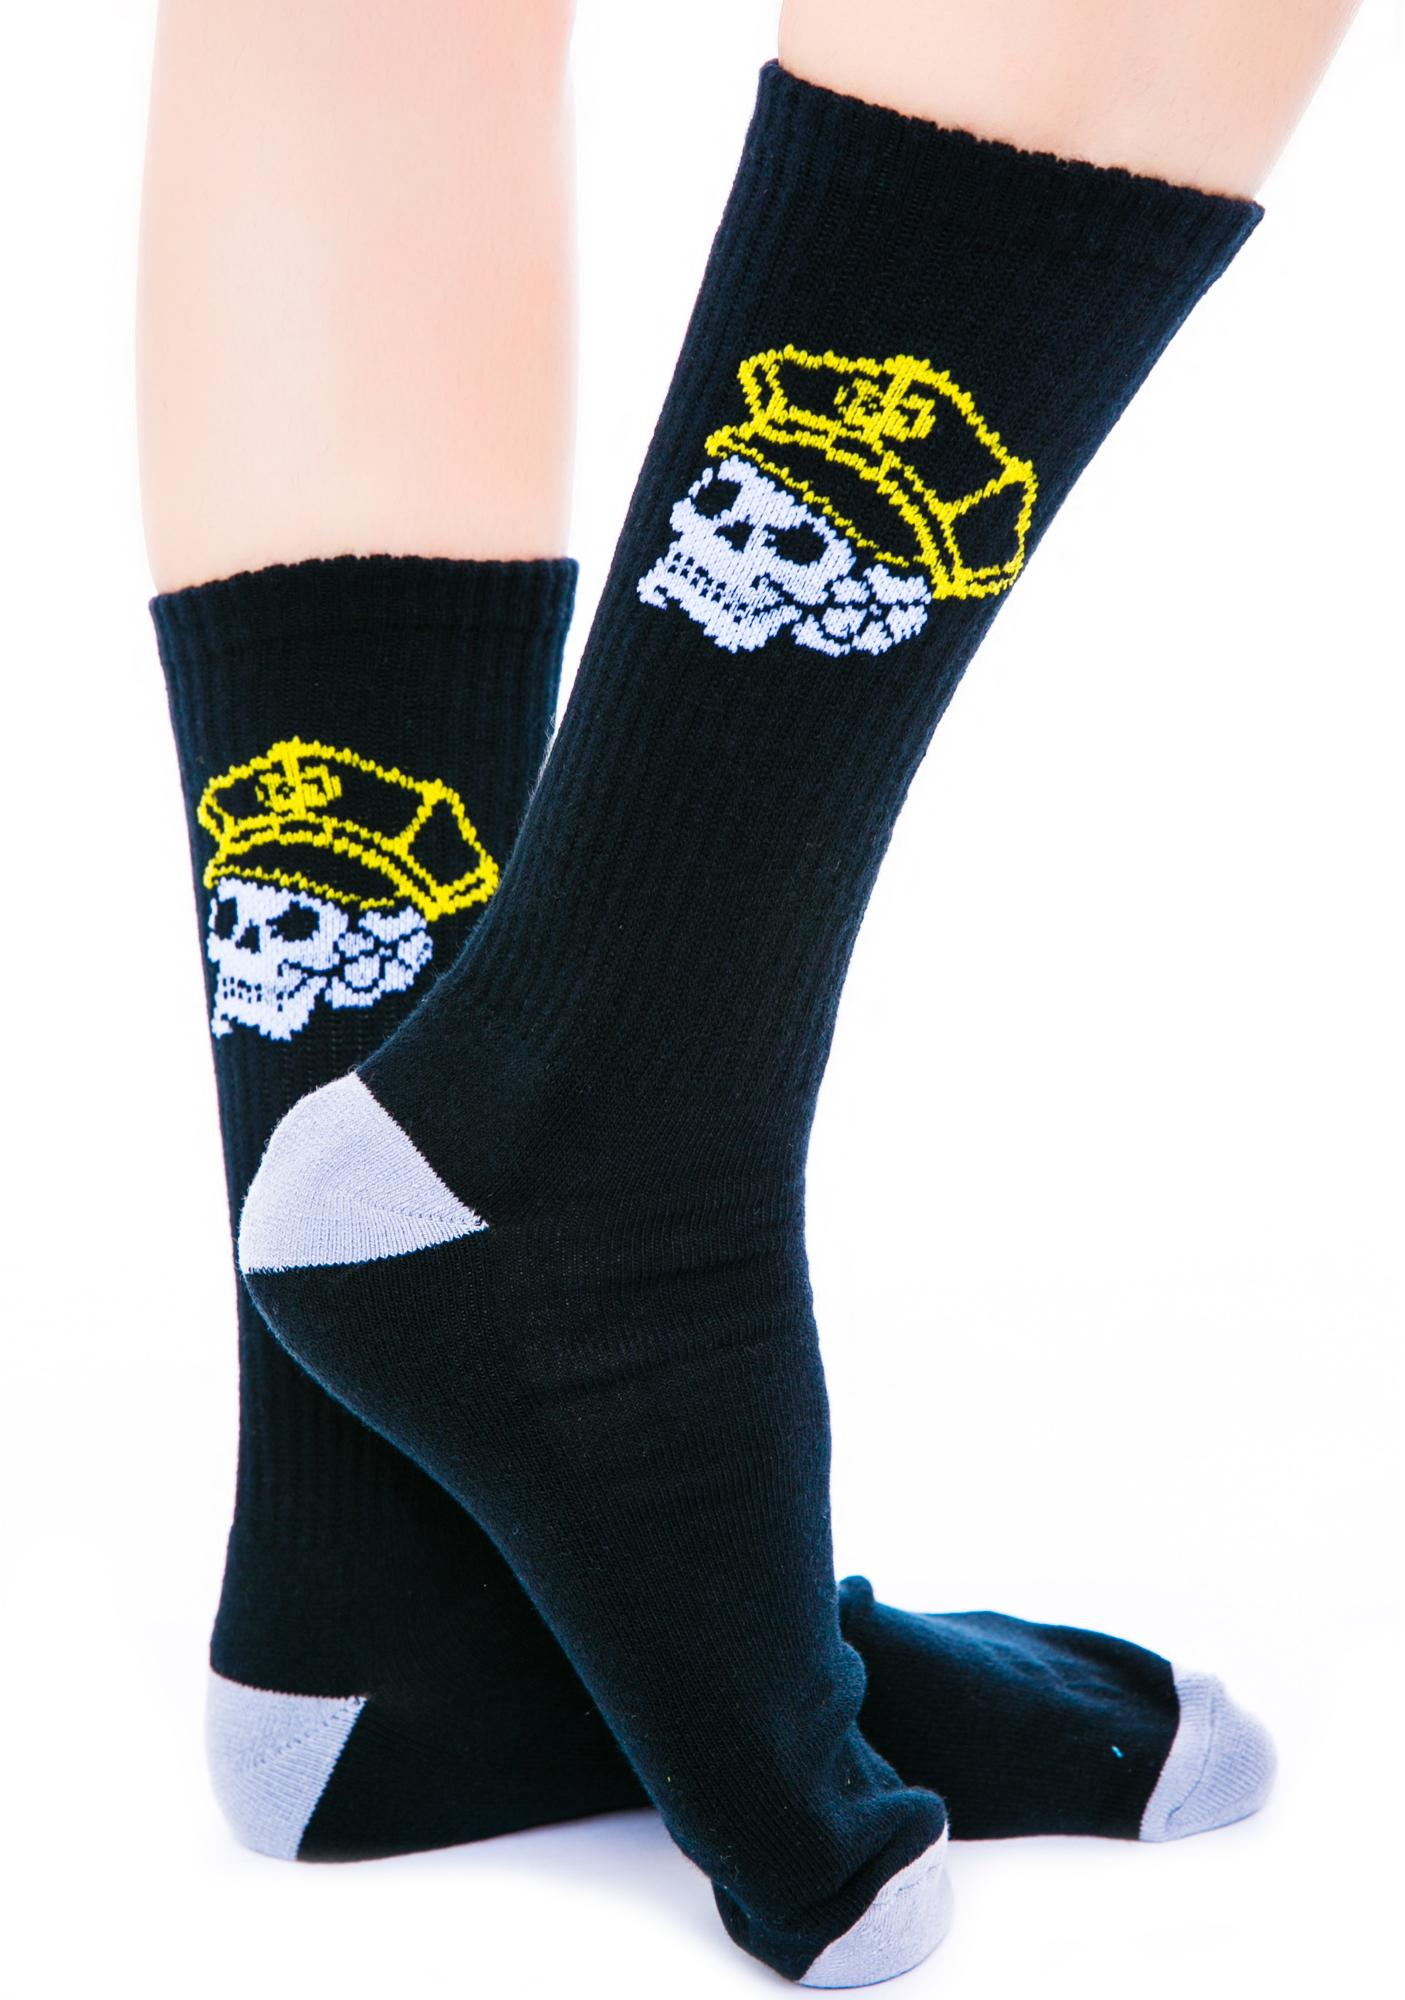 Rebel8 Civil Servant Socks